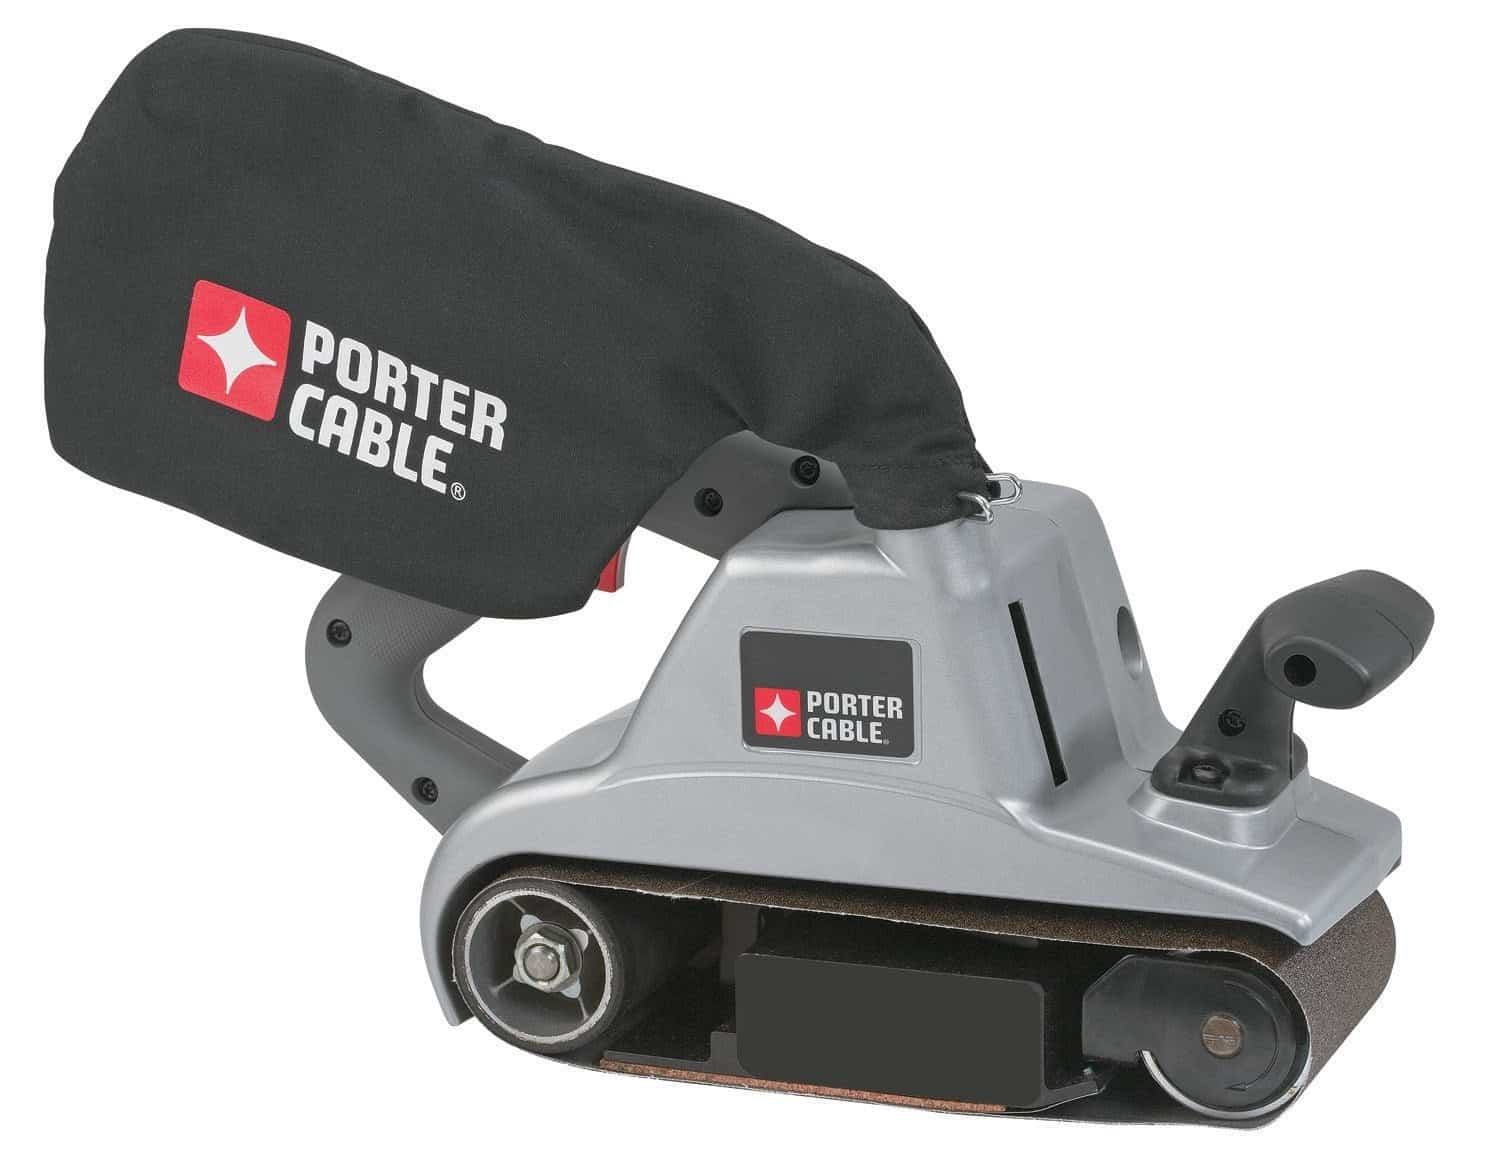 4-inch by 24-inch variable speed belt sander with powerful 12 Amp motor and quick-release belt-change lever.